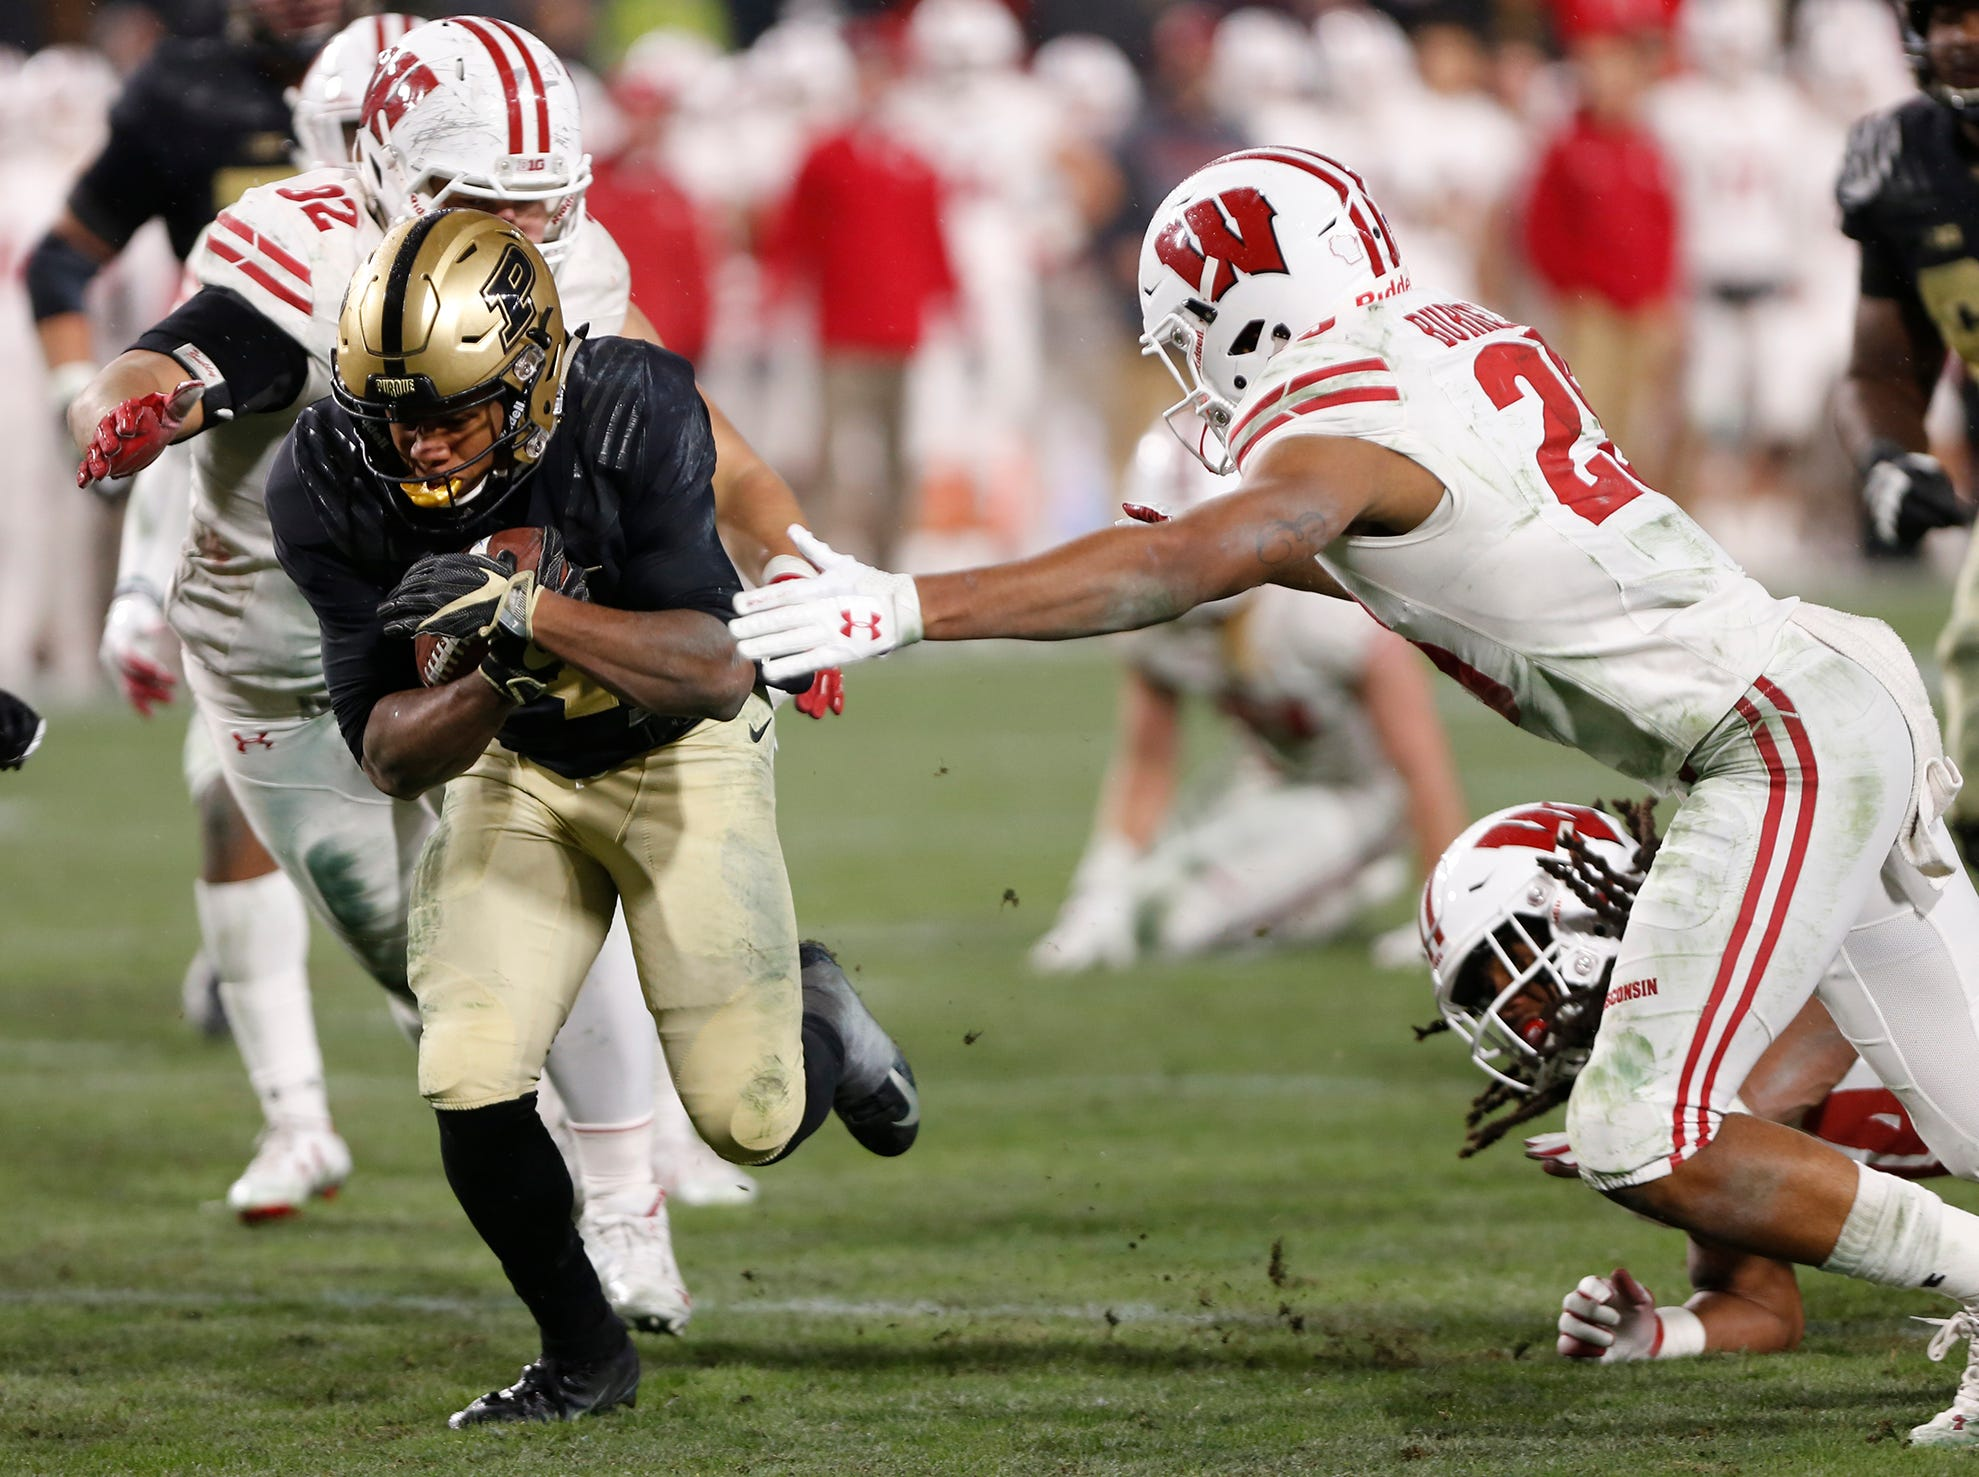 Rondale Moore of Purdue with a touchdown in the first overtime period against Wisconsin Saturday, November 17, 2018, at Ross-Ade Stadium. Purdue fell to Wisconsin 47-44 3OT.